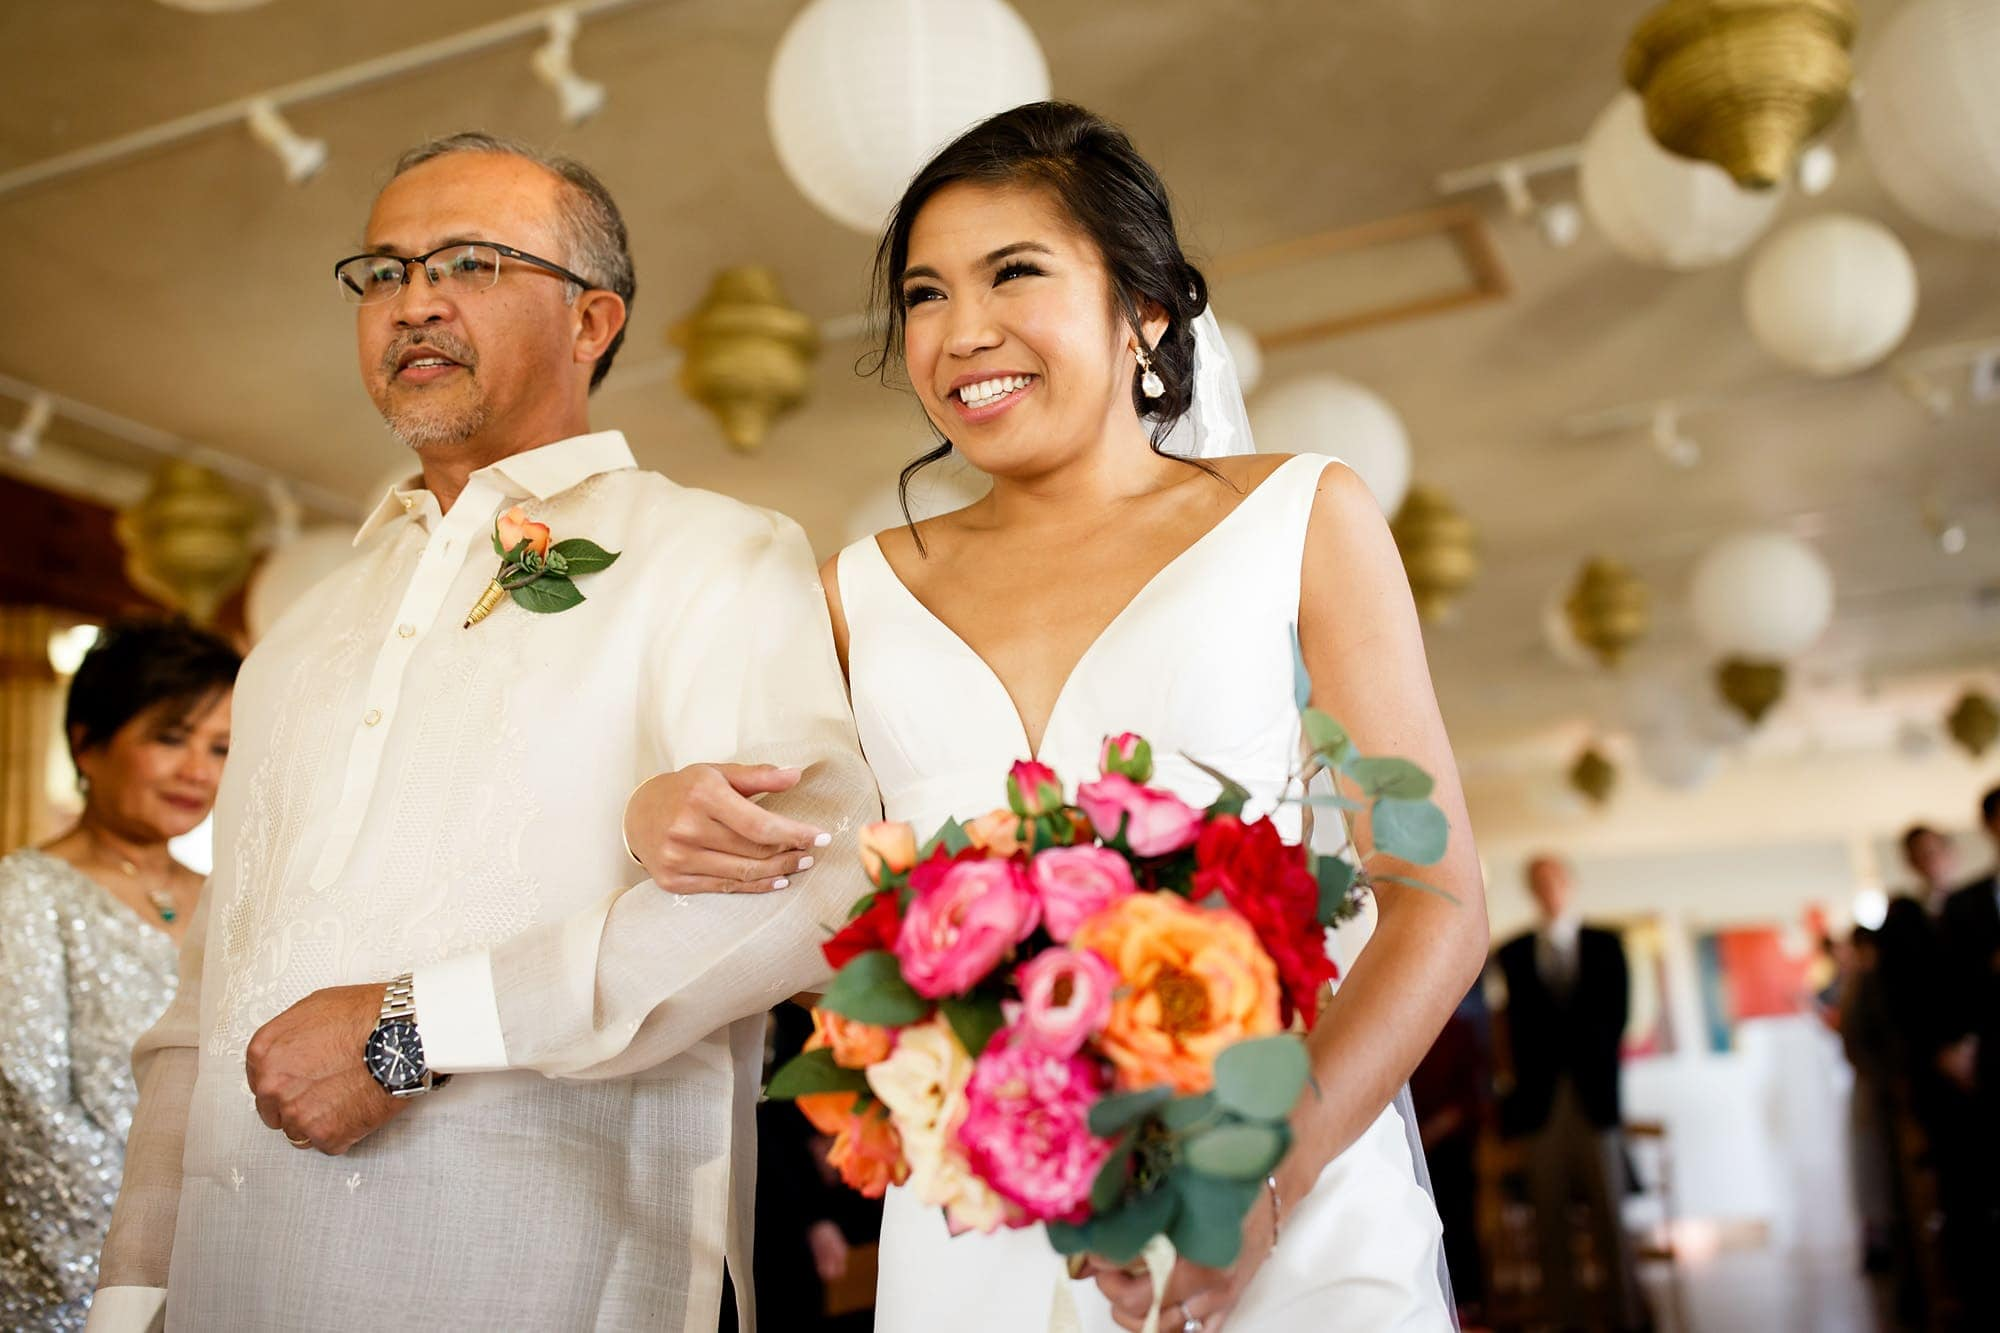 Megan walks down the aisle with her father by her side during her wedding at Rembrandt Yard